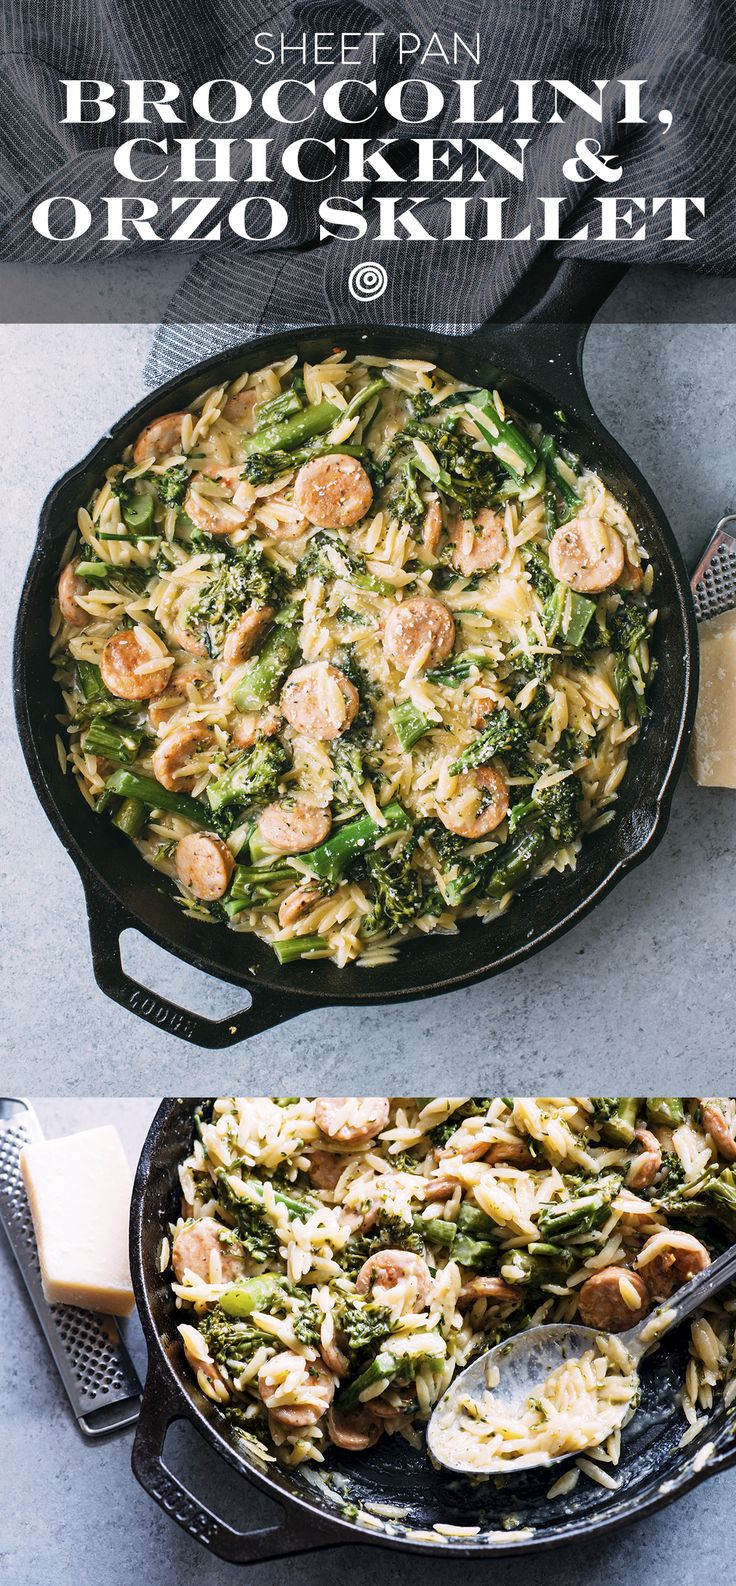 Broccolini, Chicken and Sausage, and Orzo Cast iron Skillet Recipe. One pan meals are dinner saviors! Bake this creamy casserole in the oven and get a satisfying meal on the table FAST and EASY. Tender Broccolini (or broccoli), spicy chicken sausage, and orzo pasta come together in one pan to make a creamy, satisfying dinner that only requires a bowl and a fork.